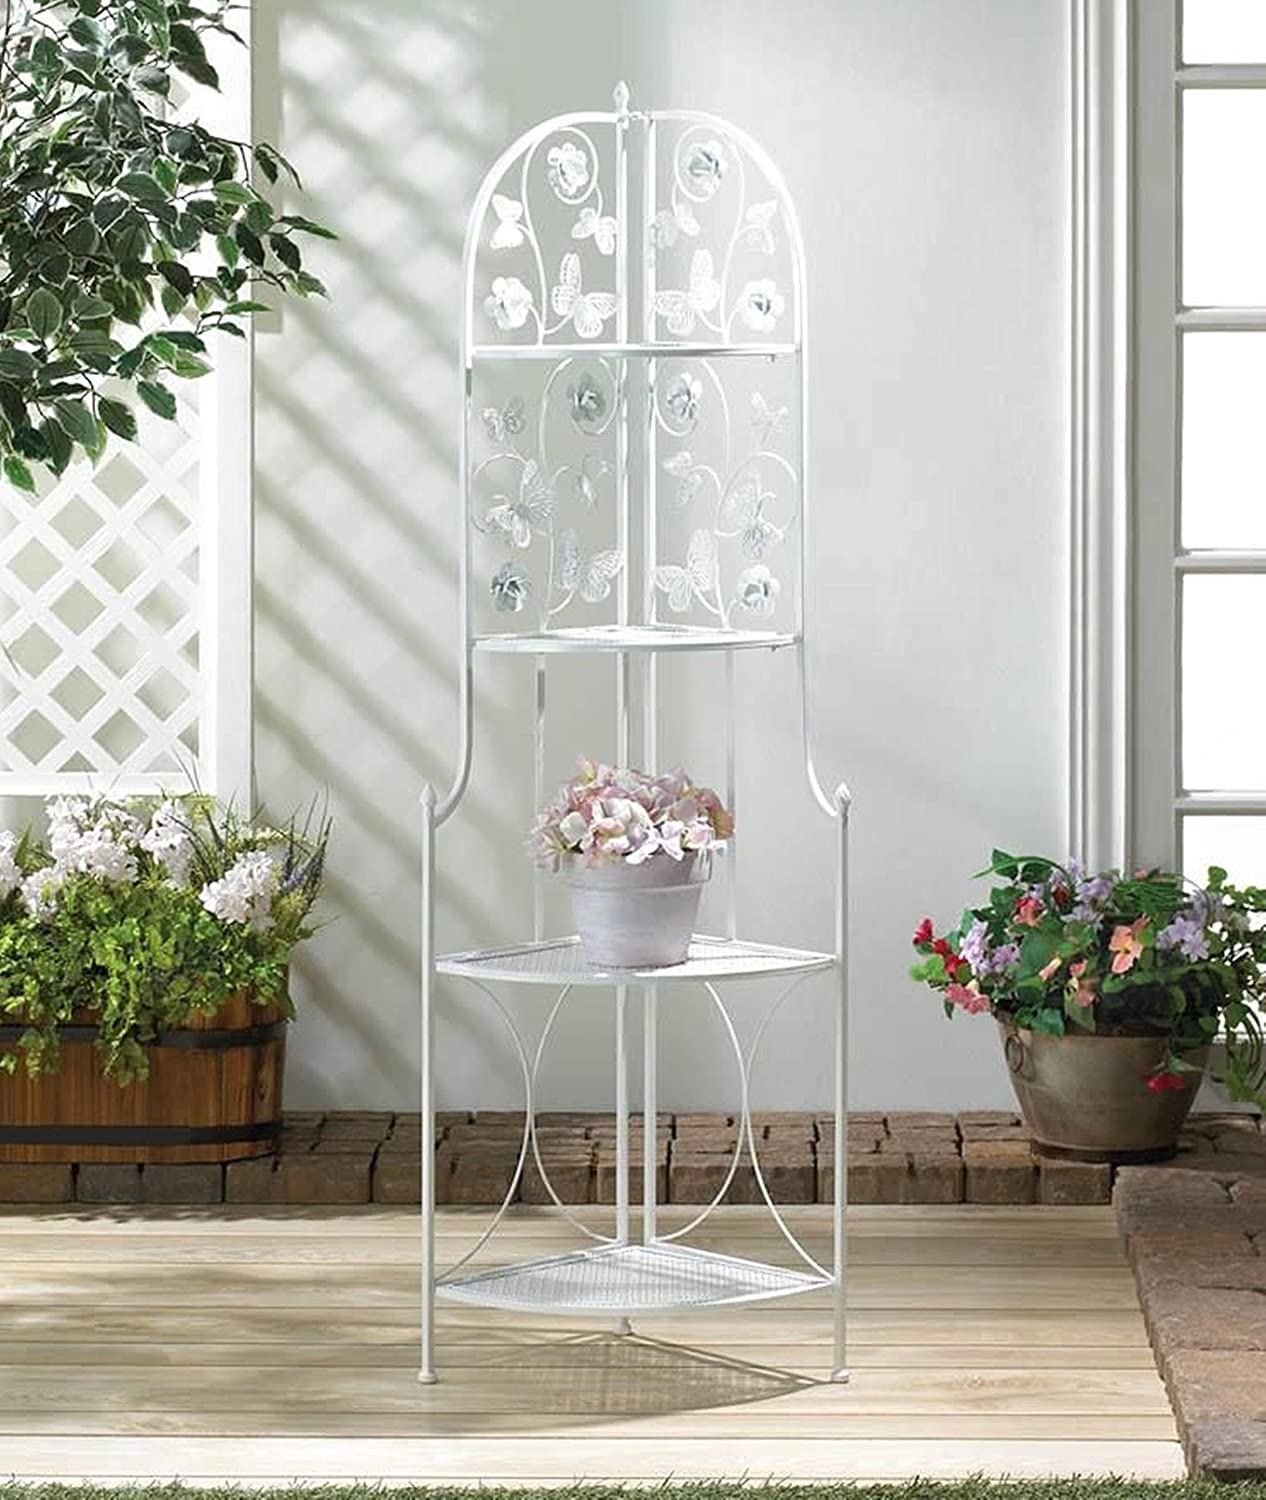 Butterfly Corner Plant Stand - 数量限定アウトレット最安価格 Butterflies White Shelf 賜物 Metal T 4